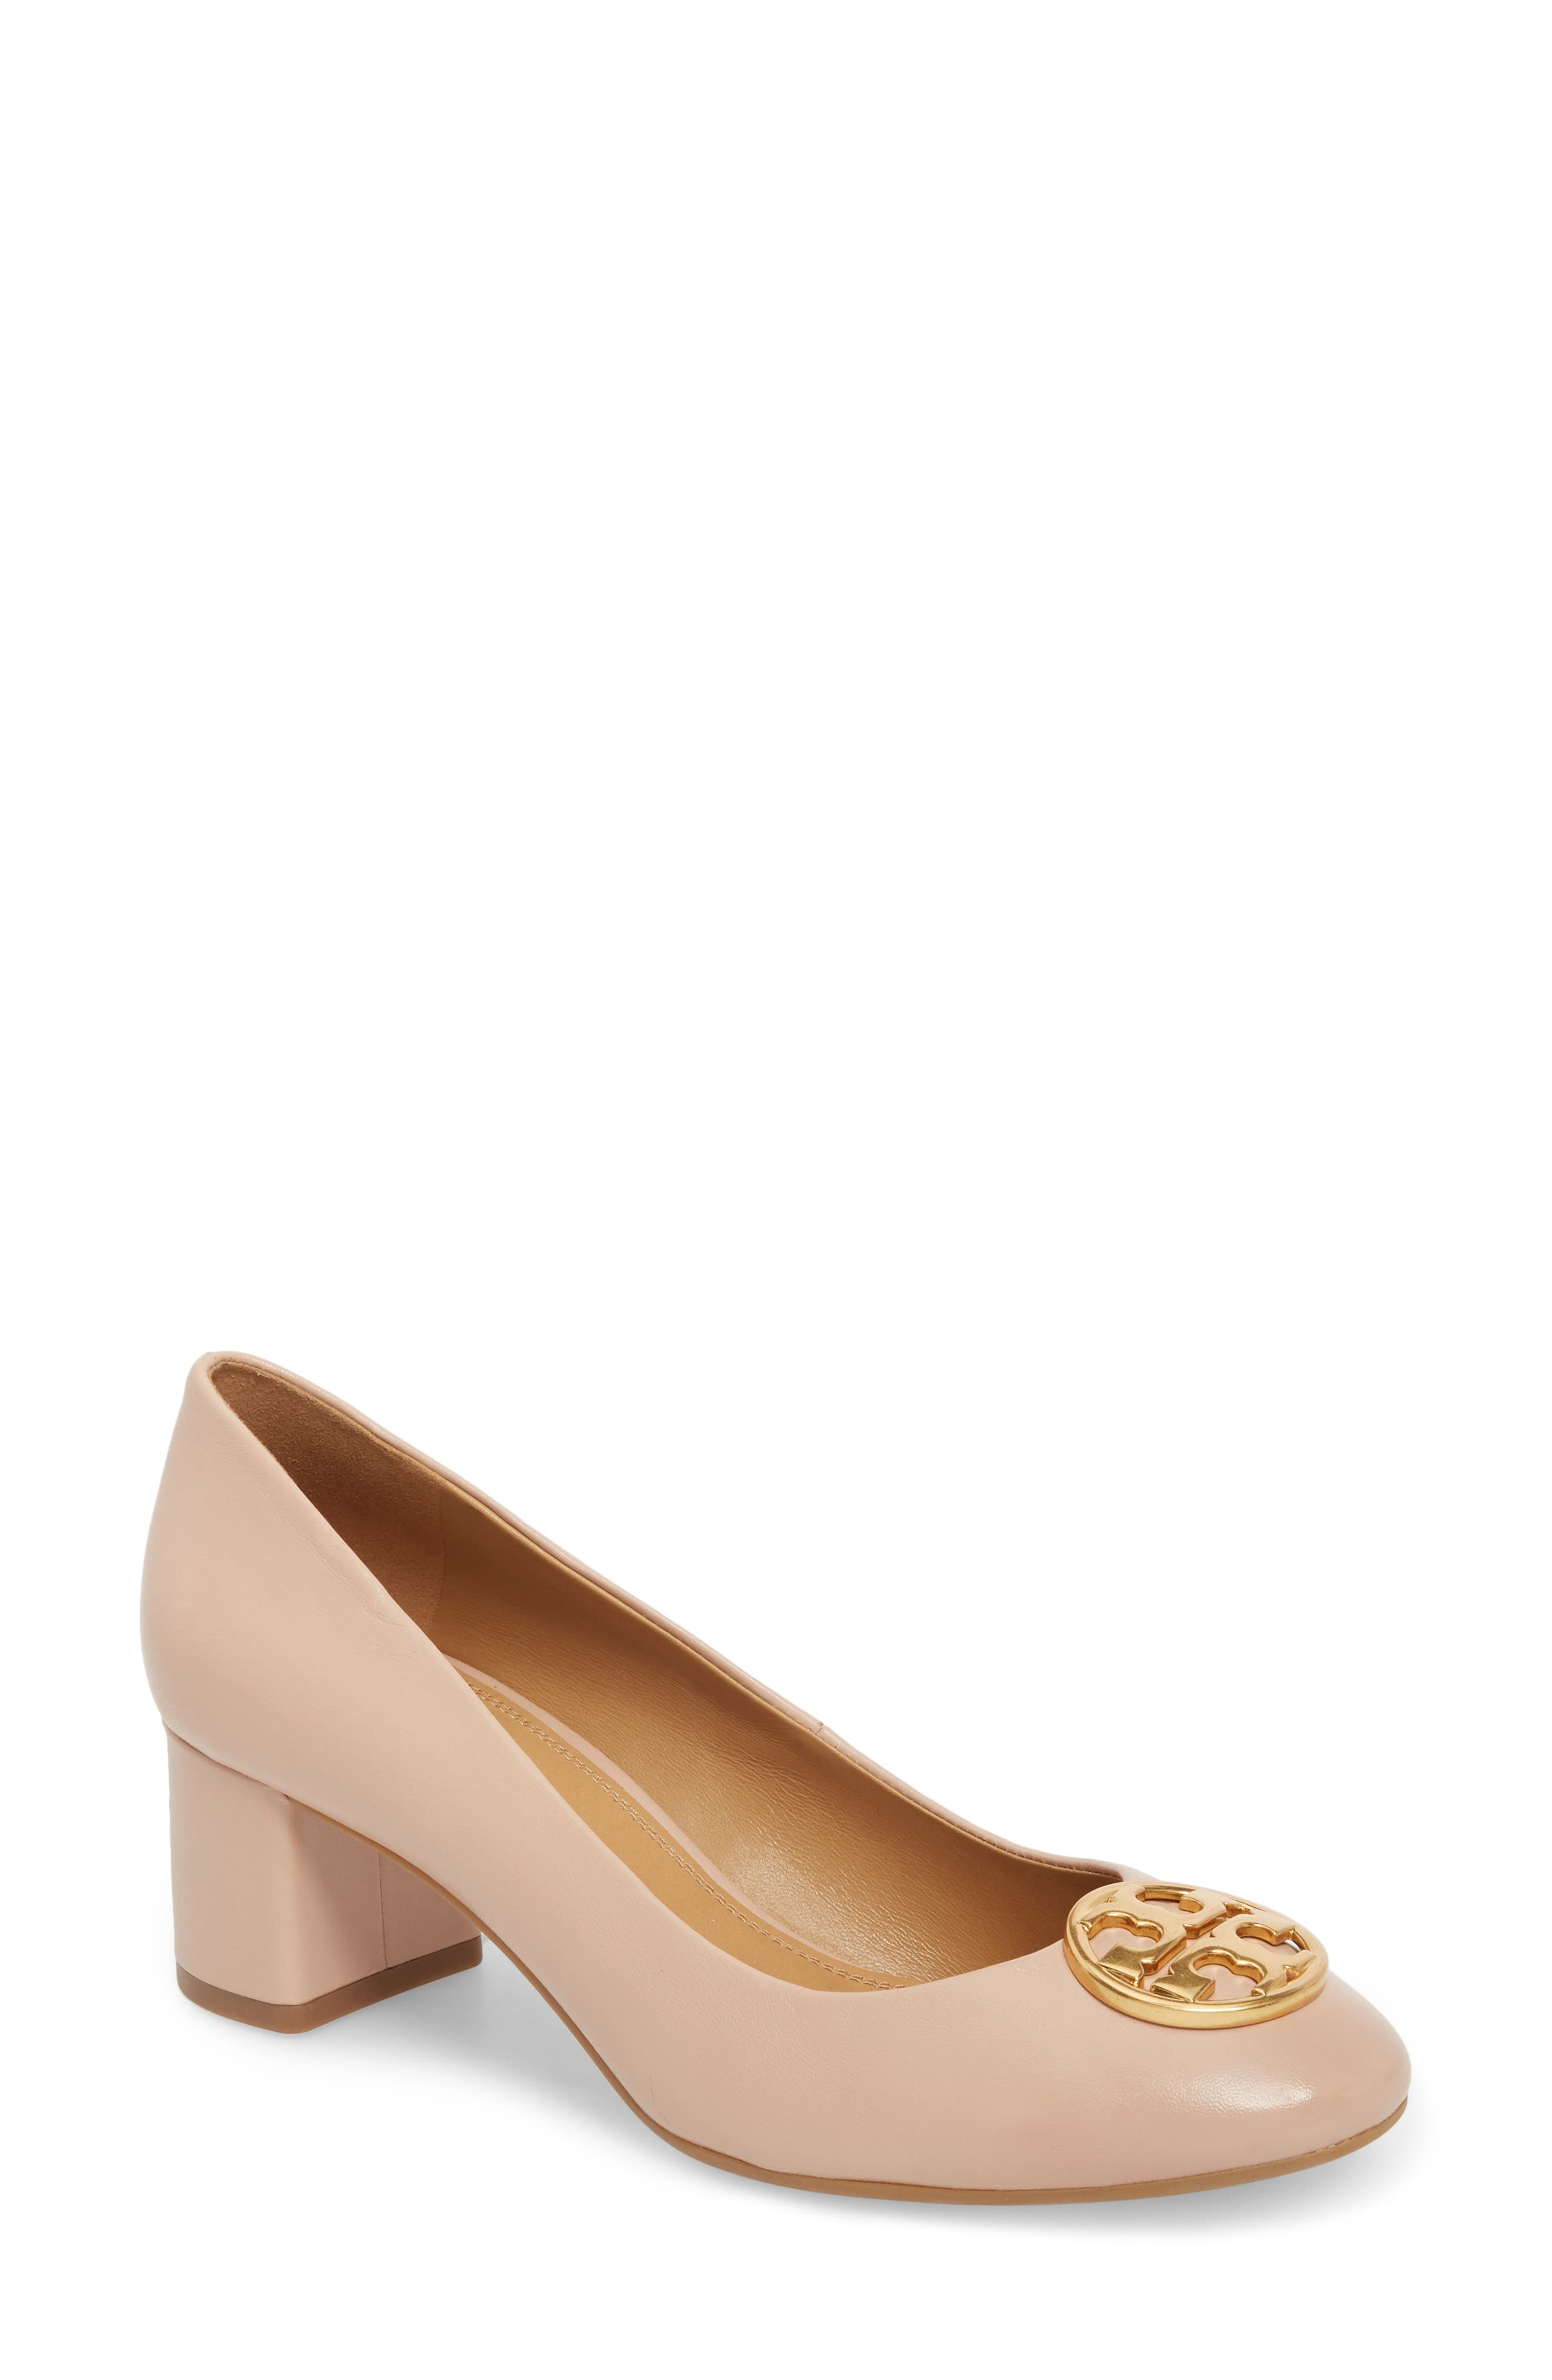 Chelsea Pump,                         Main,                         color, Goan Sand